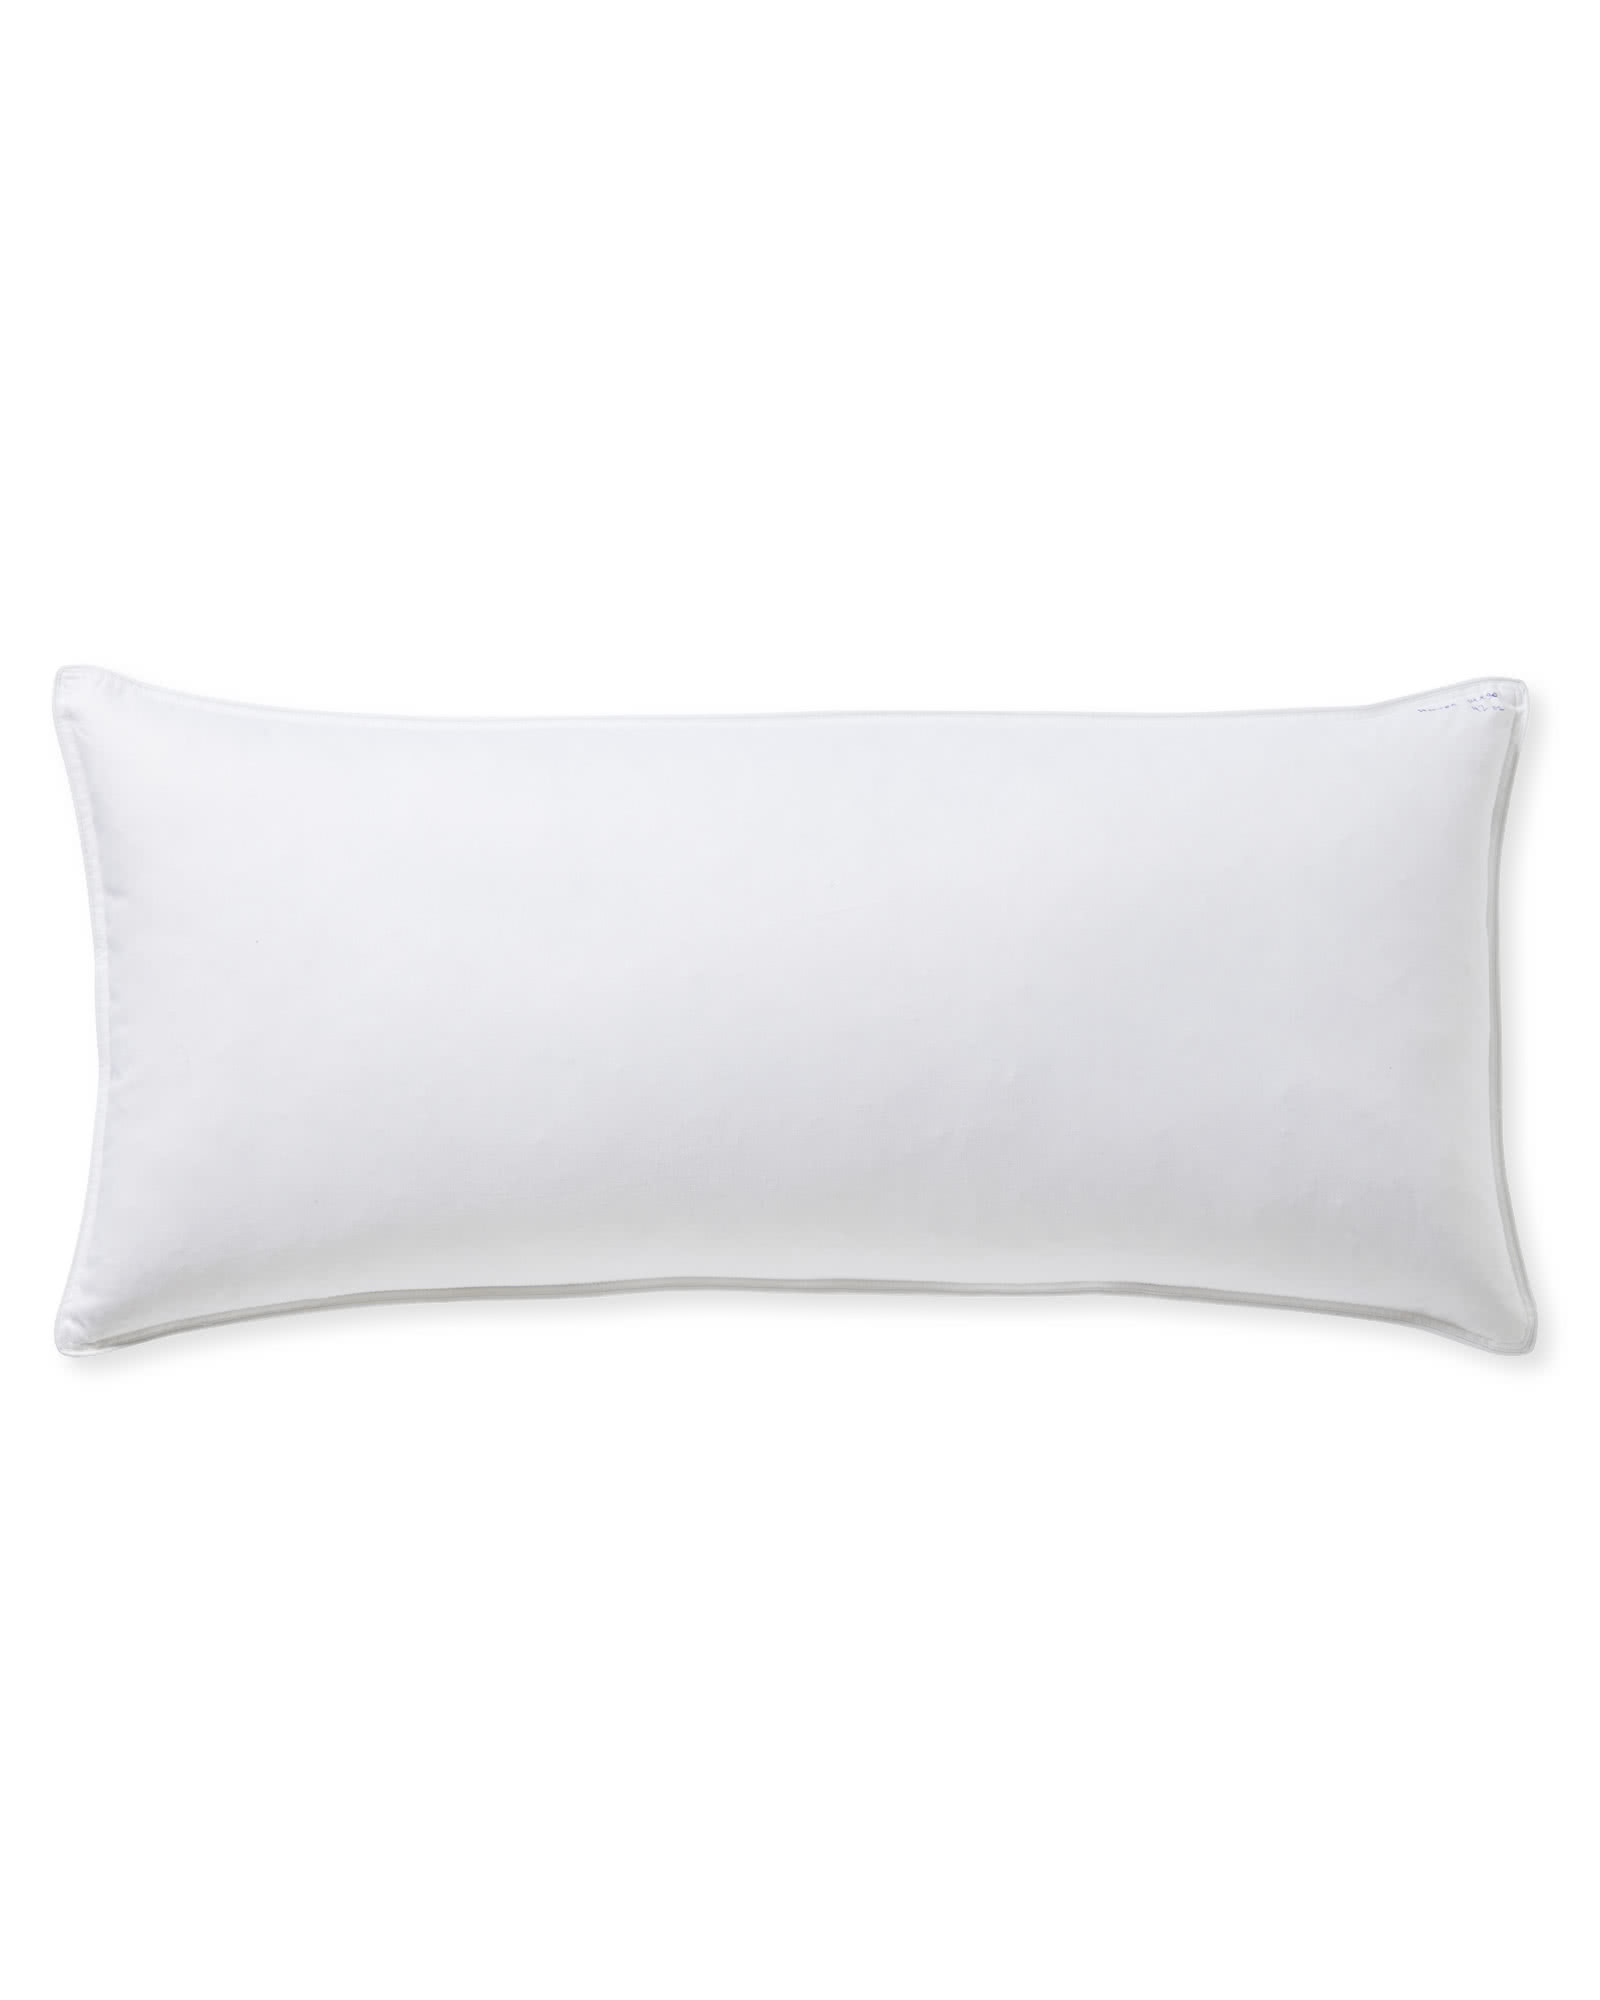 Pillow Inserts,